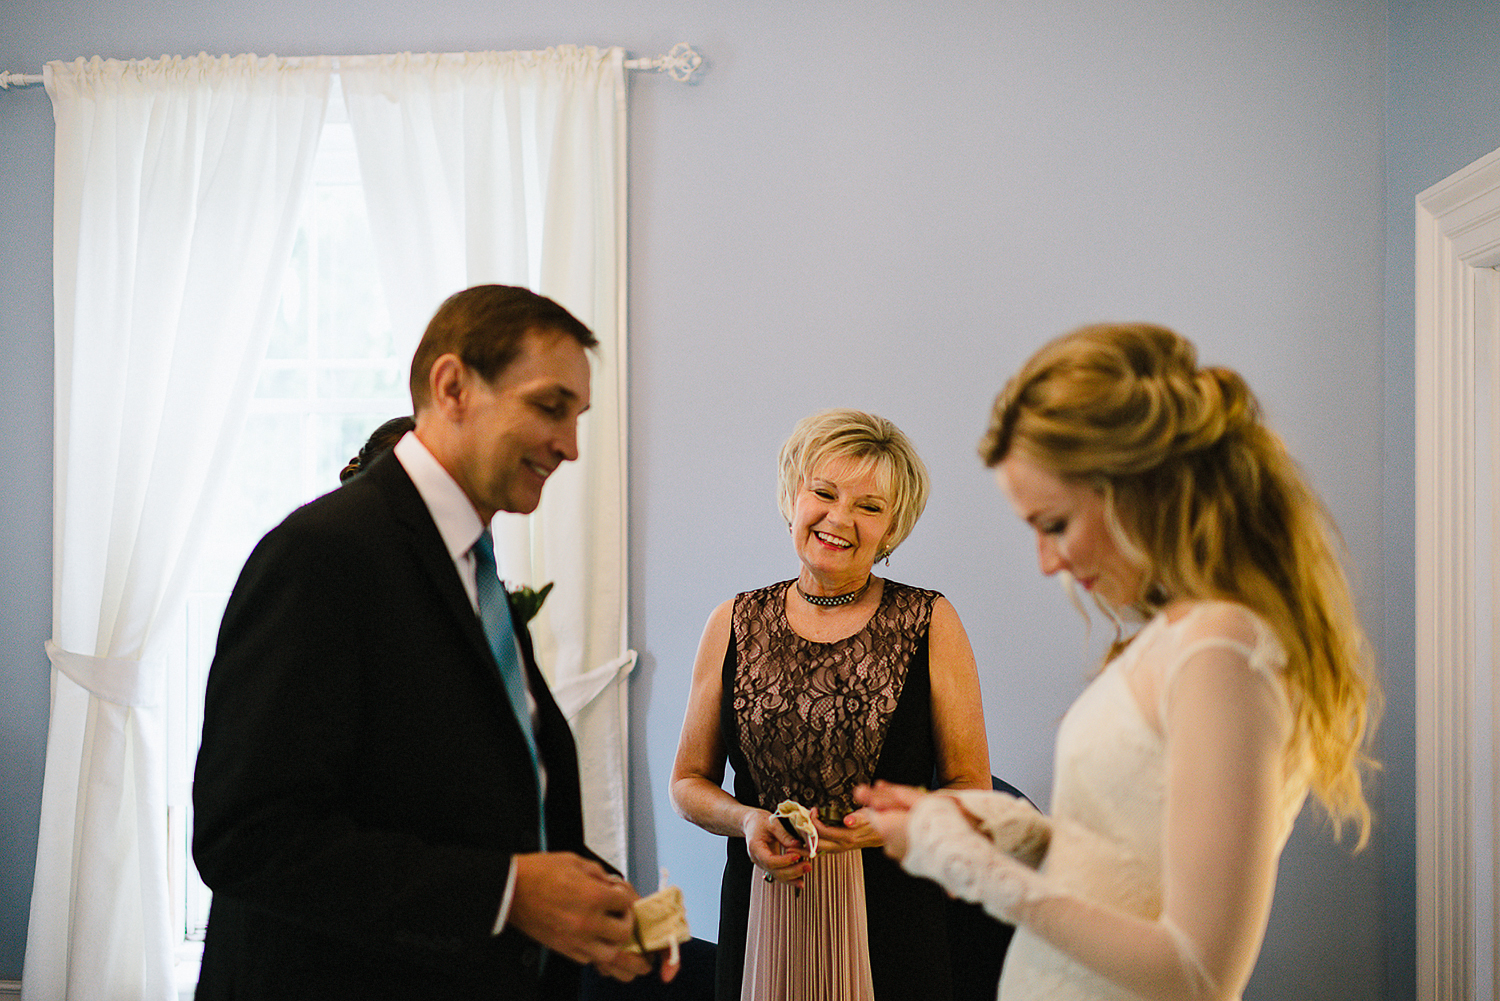 Best-Moody-Documentary-Wedding-Photography-Photojournalism-Vintage-Small-Town-Chapel-Wedding-Toronto-Ontario_Candid-Bride-and-Parents-candid-moment.jpg